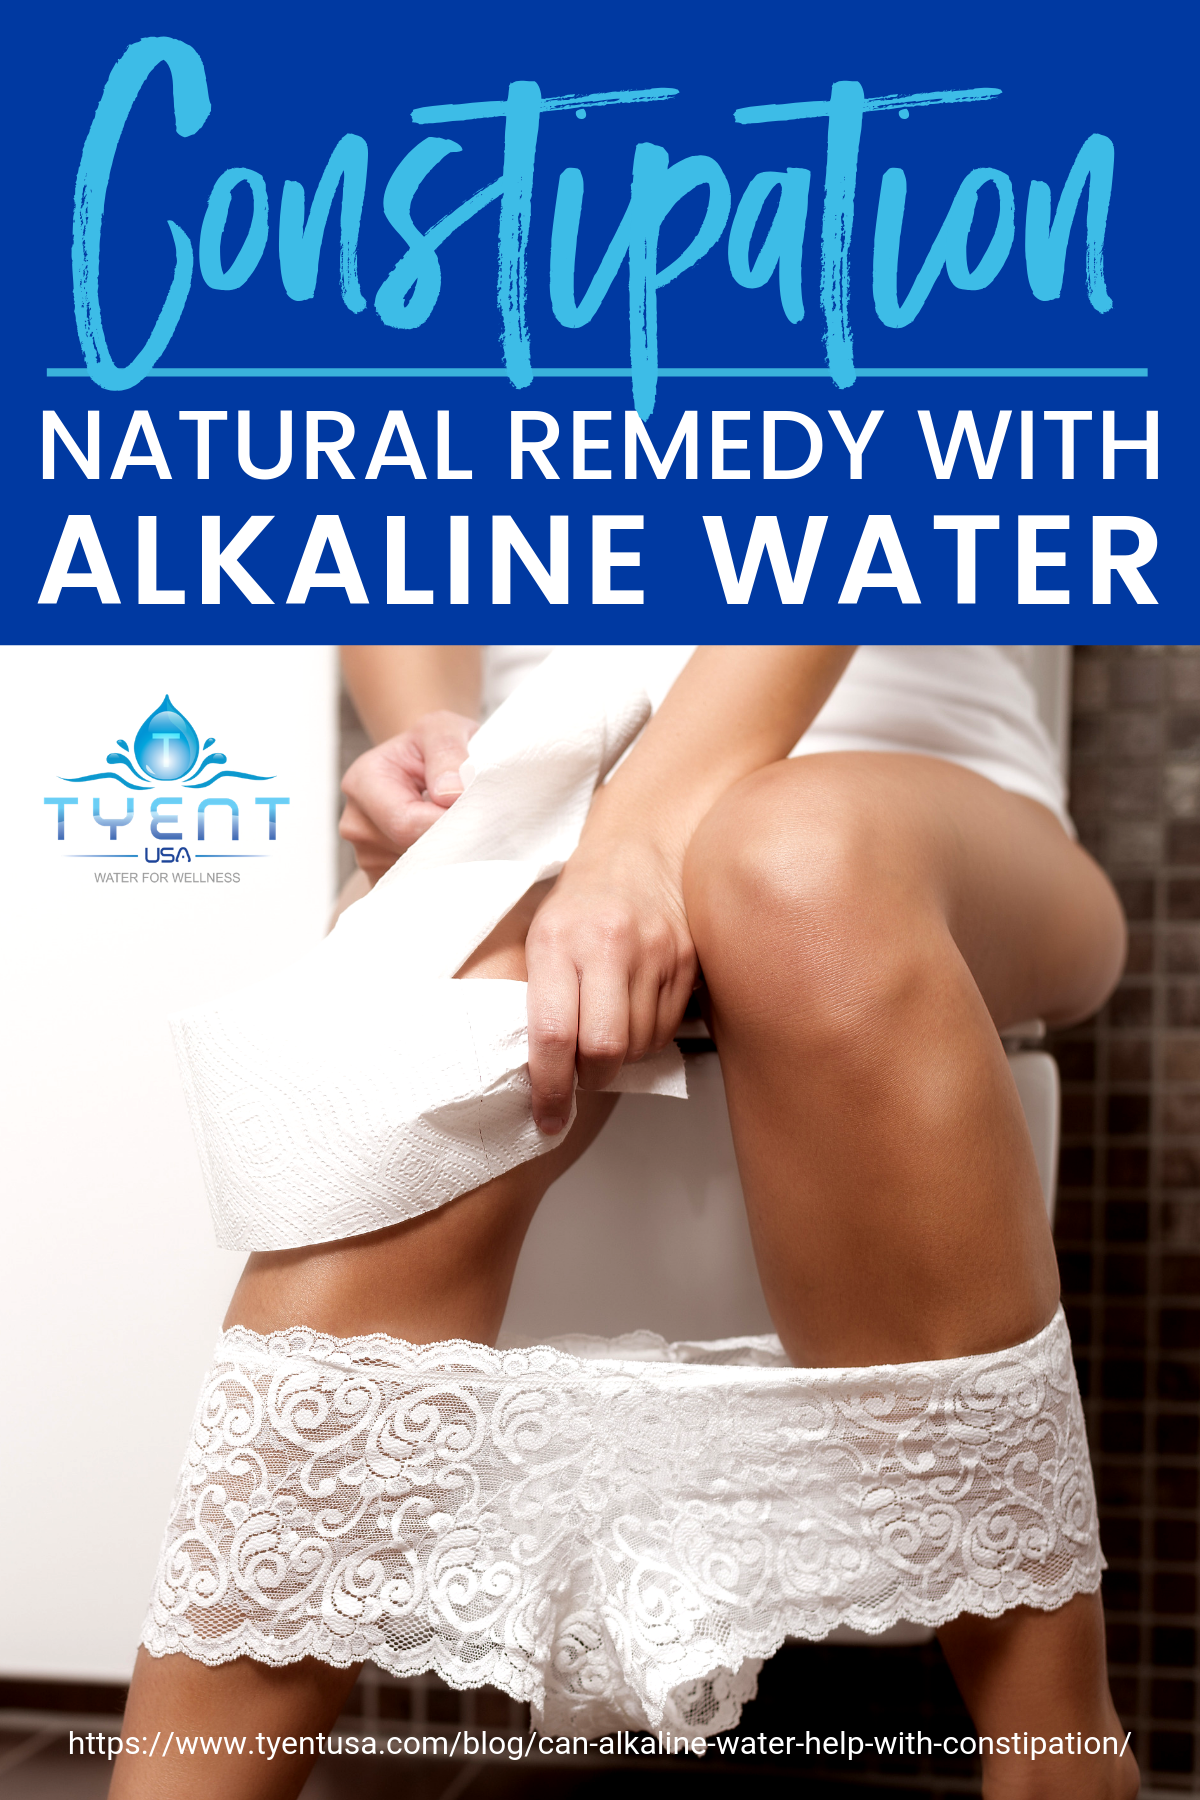 Constipation Natural Remedy With Alkaline Water – HOW IT WORKS [INFOGRAPHIC] https://www.tyentusa.com/blog/can-alkaline-water-help-with-constipation/